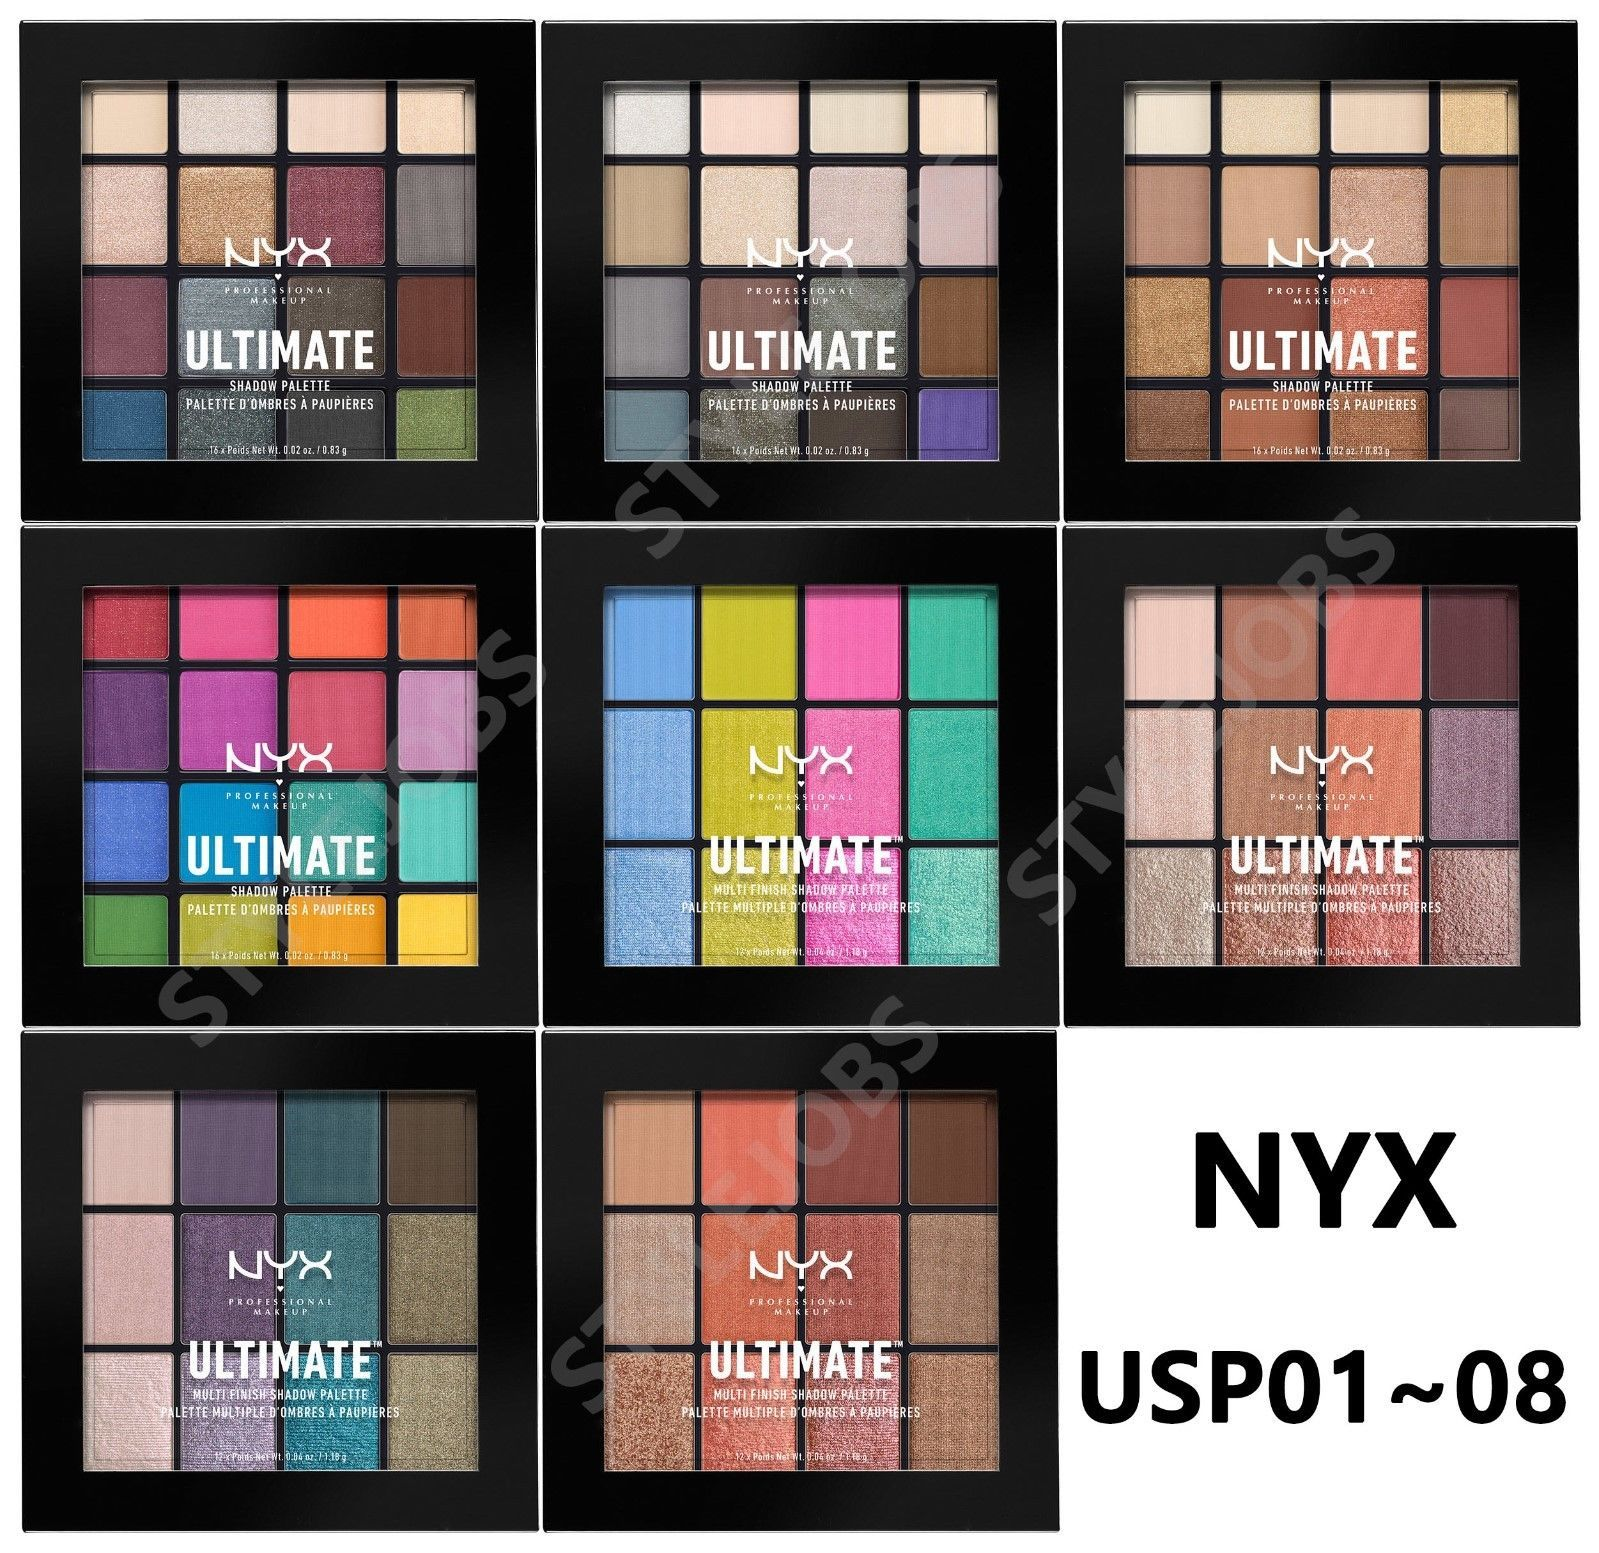 Primary image for NYX ULTIMATE (MULTI-FINISH) SHADOW PALETTE USP01~08